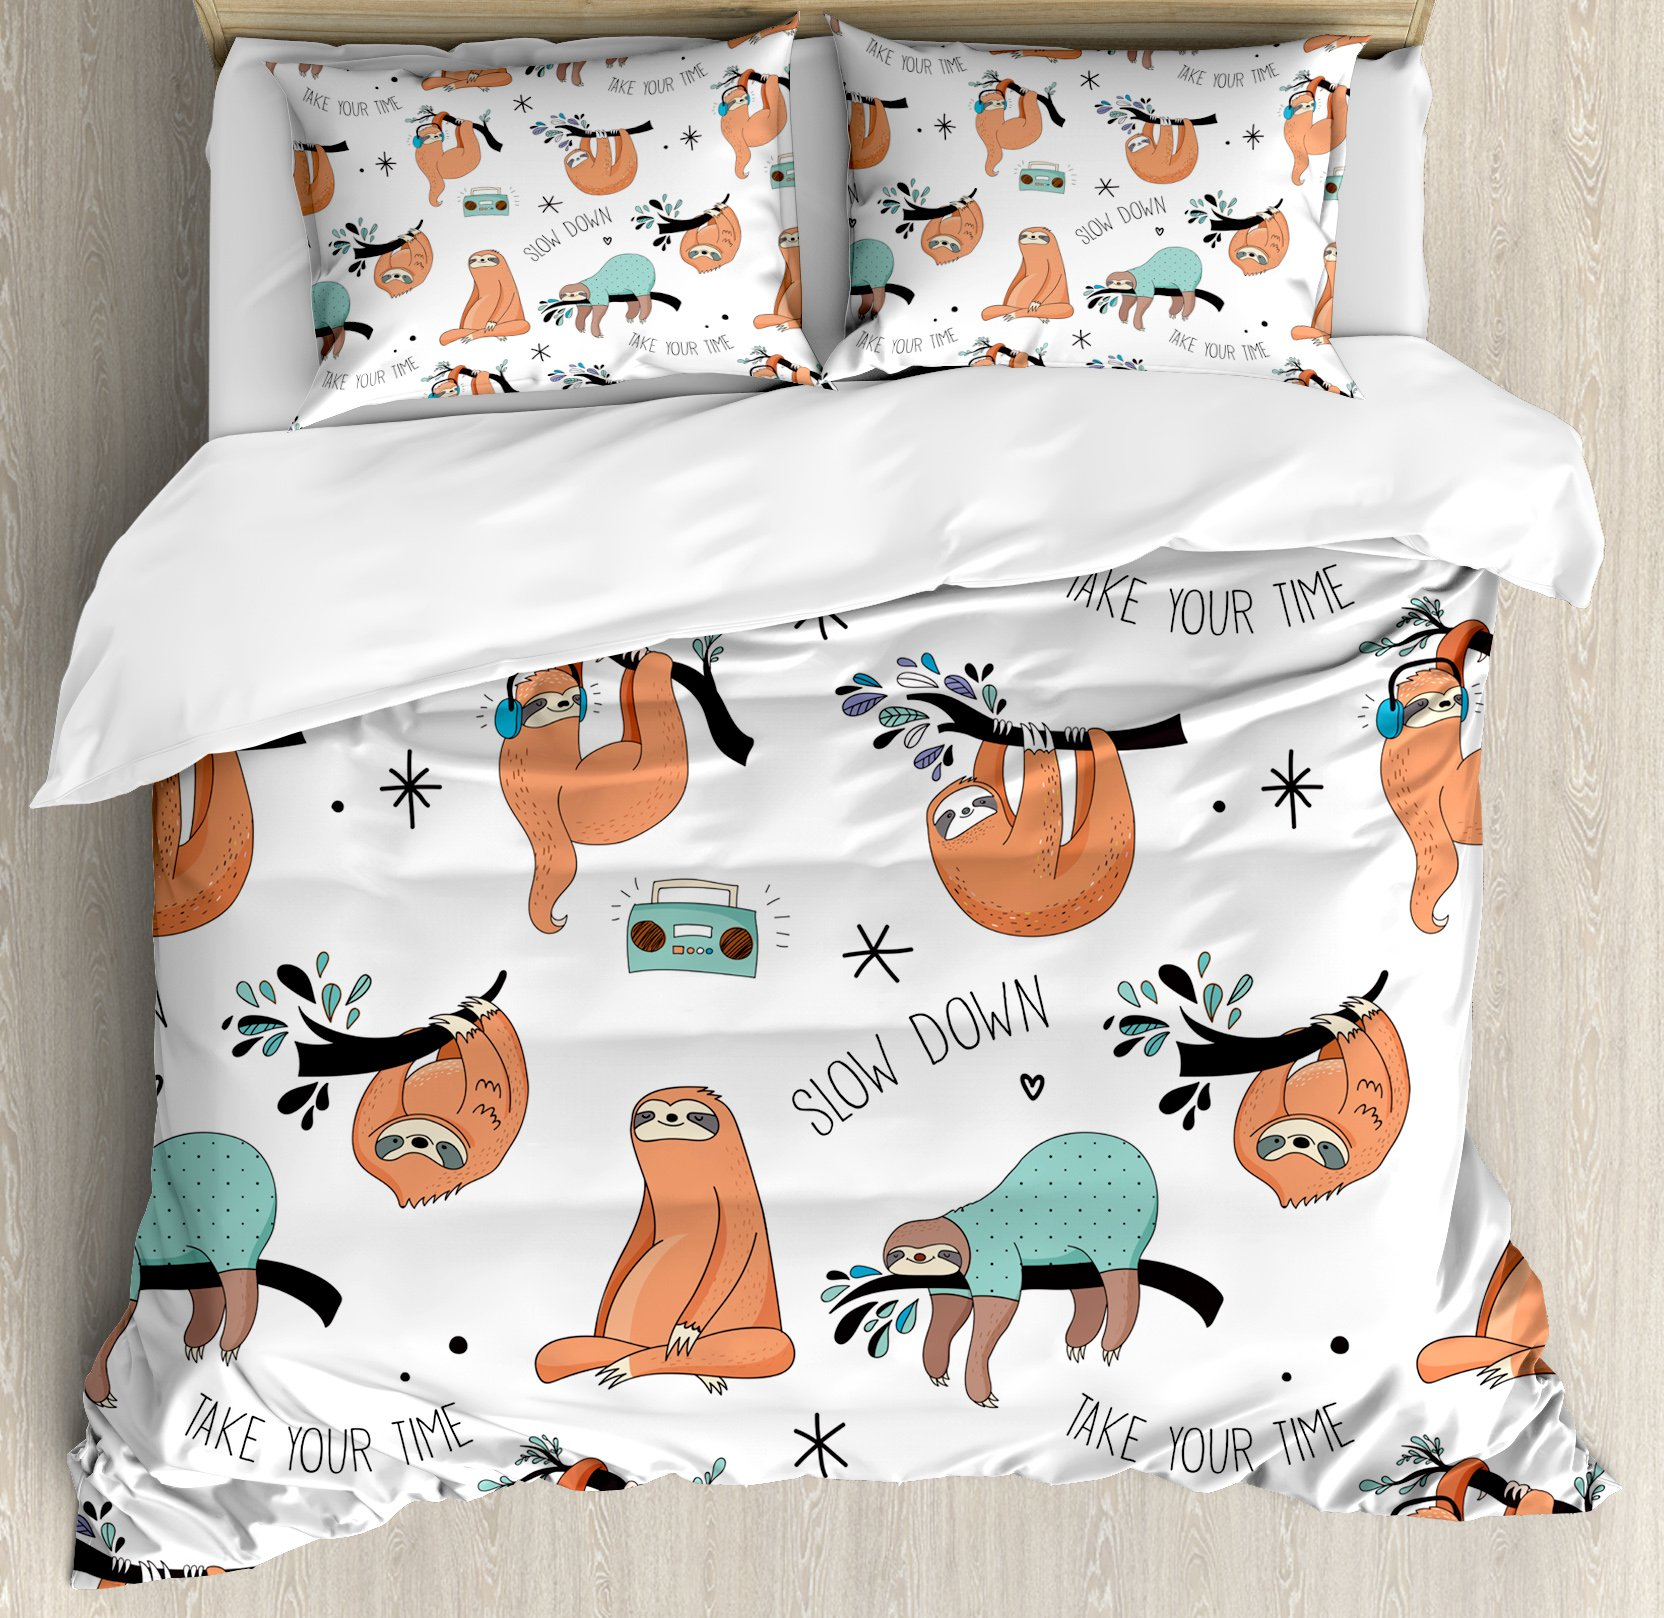 Sloth Queen Size Duvet Cover Set by Ambesonne, Pattern with Cute Hand Drawn Sloths on Branches Laziness Mood Quotes Fun, Decorative 3 Piece Bedding Set with 2 Pillow Shams, Orange Light Blue Black